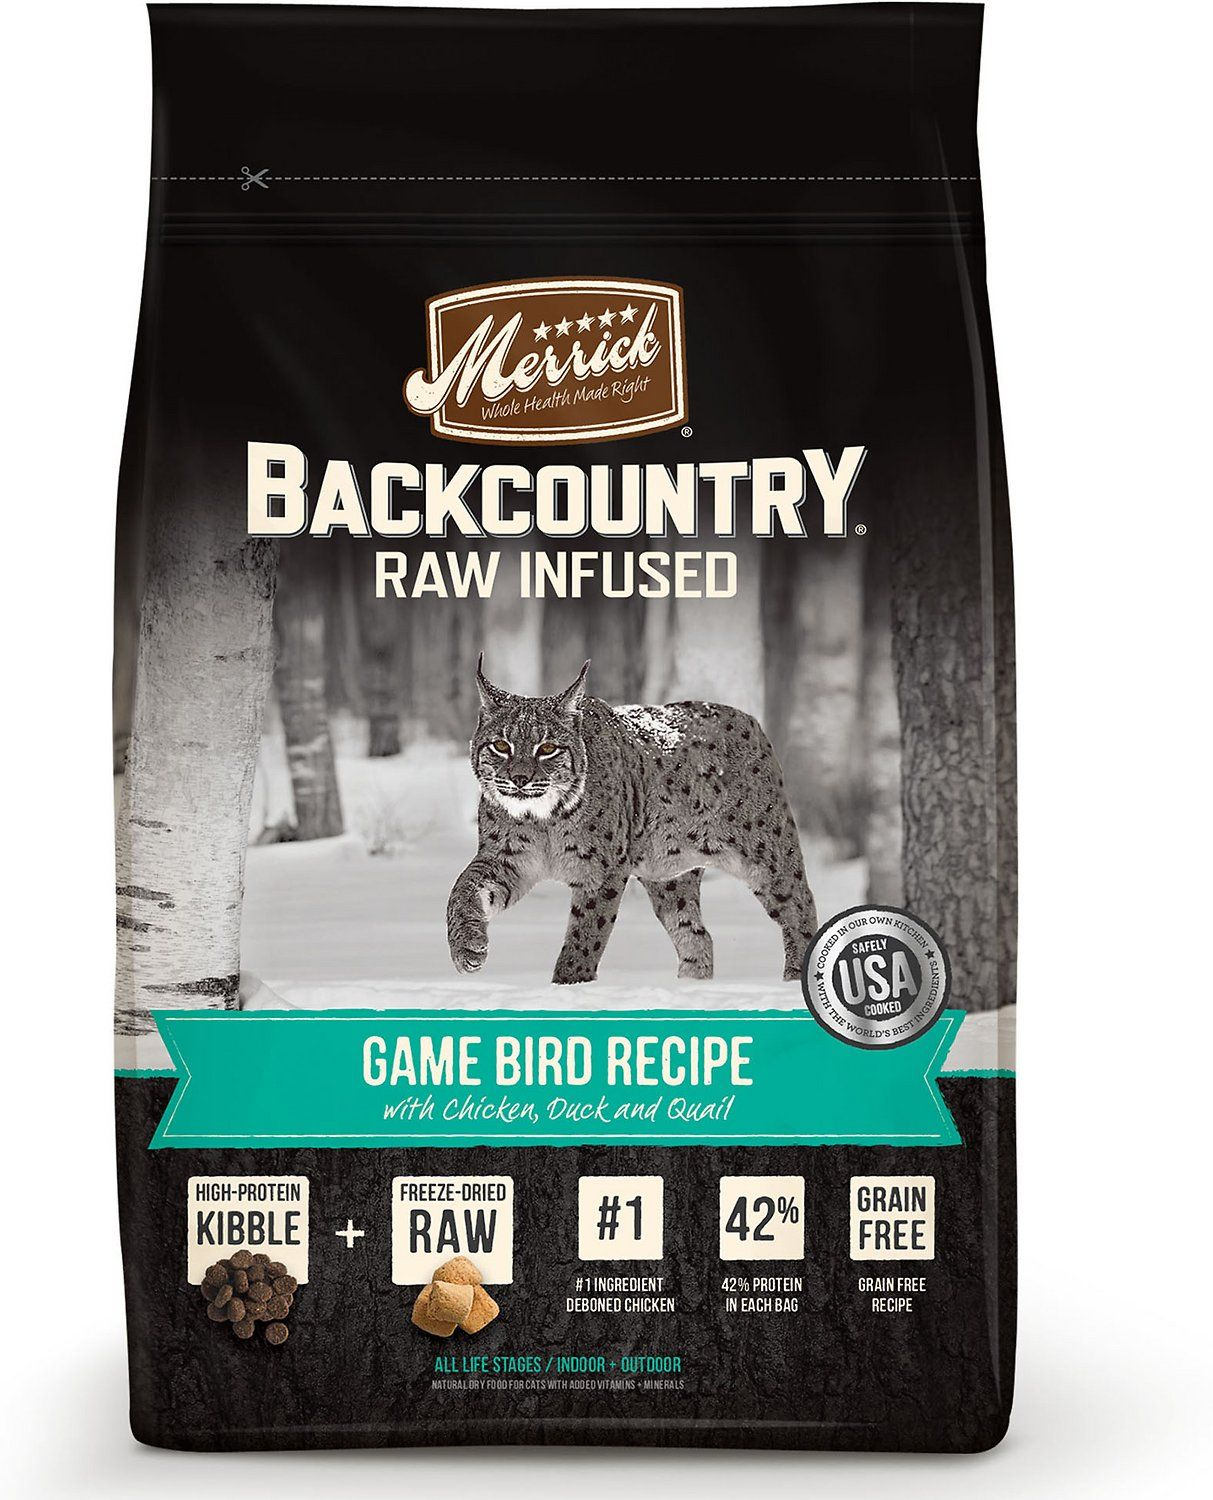 Merrick Backcountry Raw Infused Game Bird Recipe with